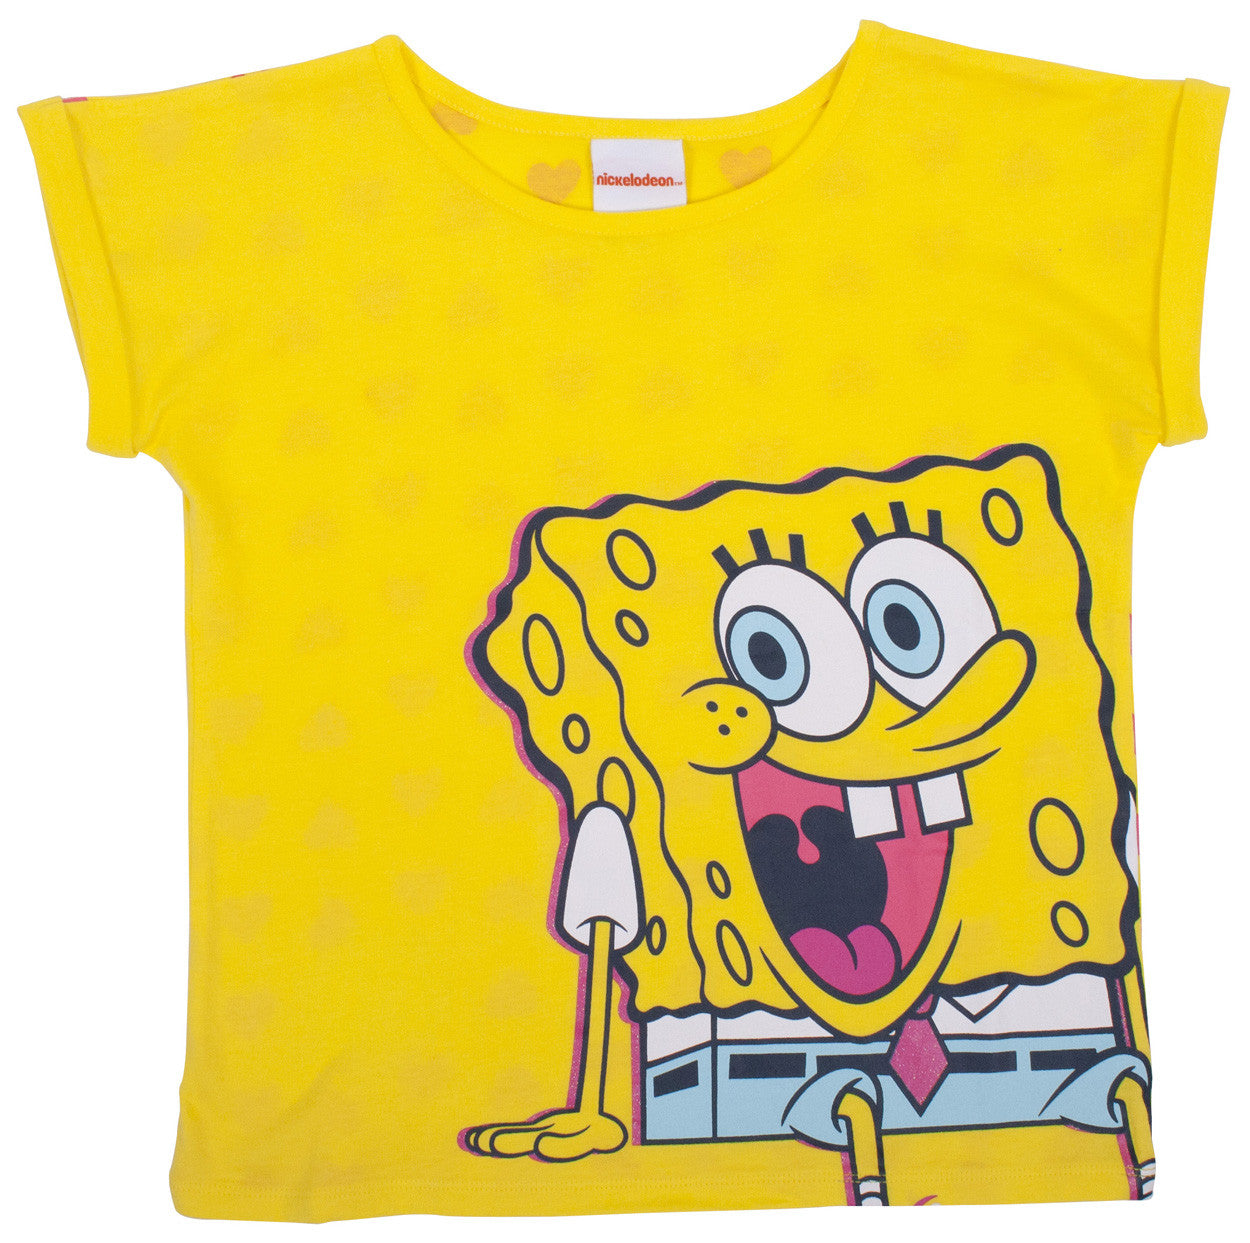 SpongeBob SquarePants rolled sleeve t-shirt